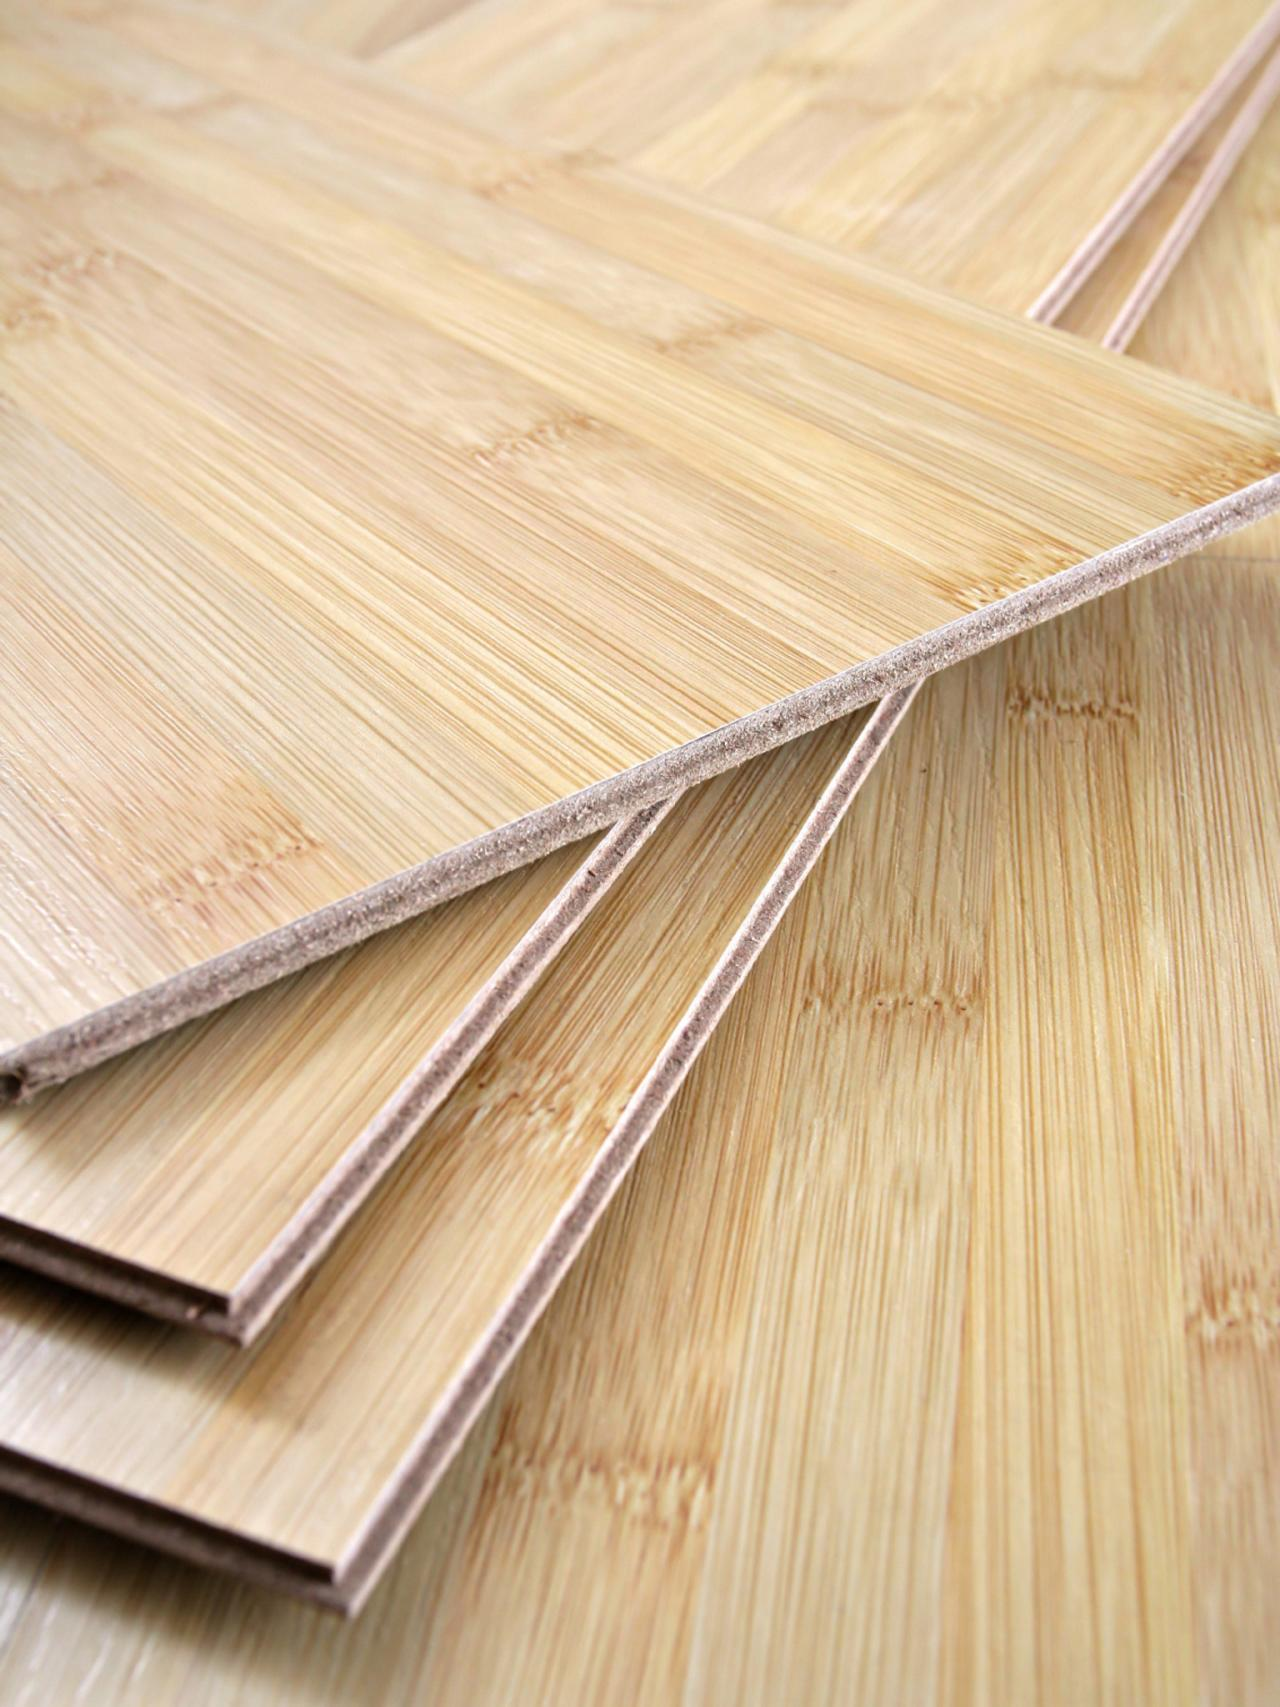 Bamboo Floor Installation